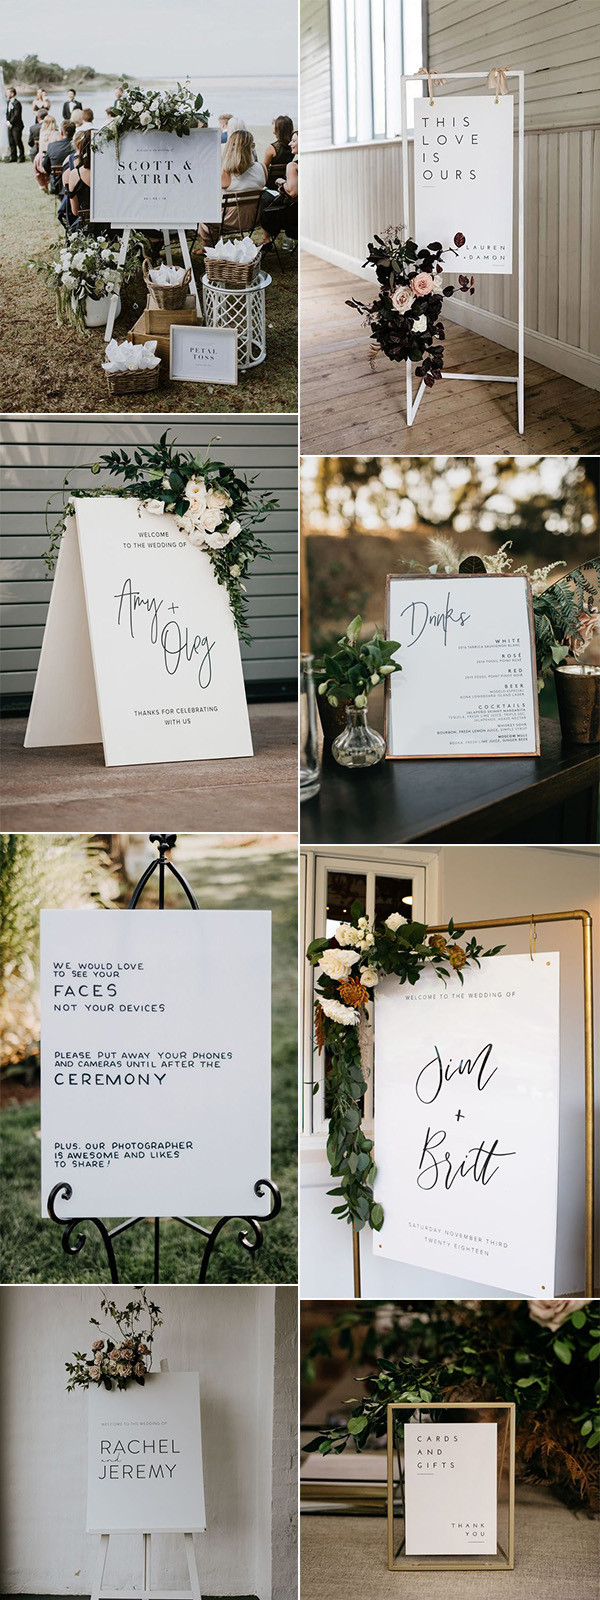 chic simple wedding signs